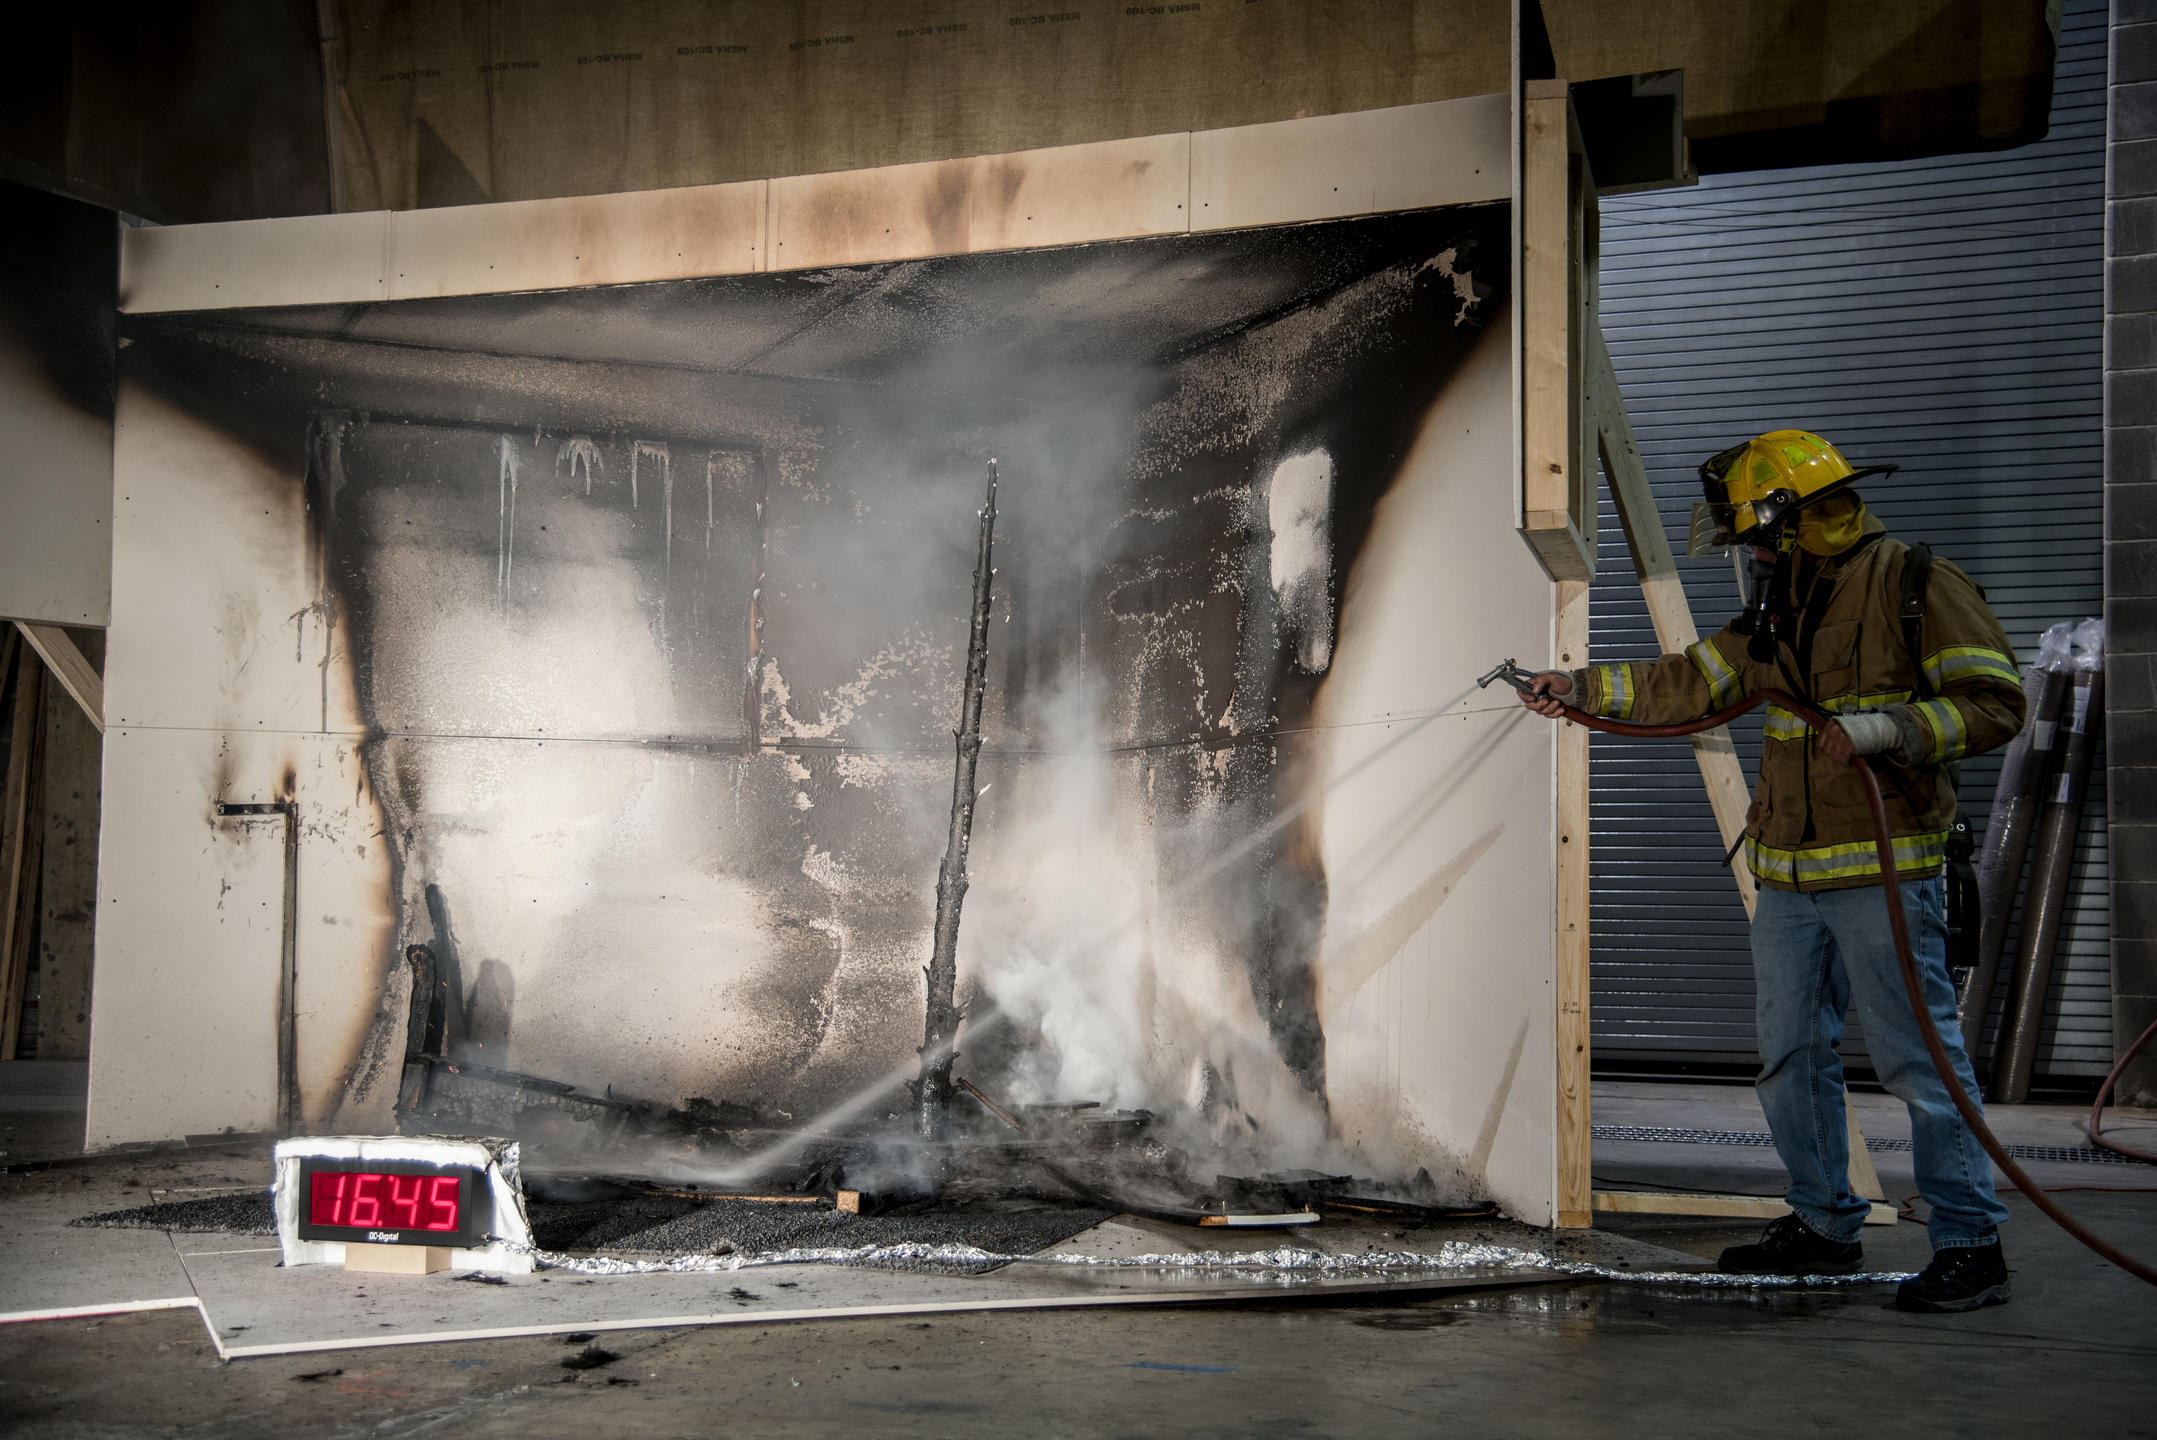 NIST employee spraying water to put out a fire